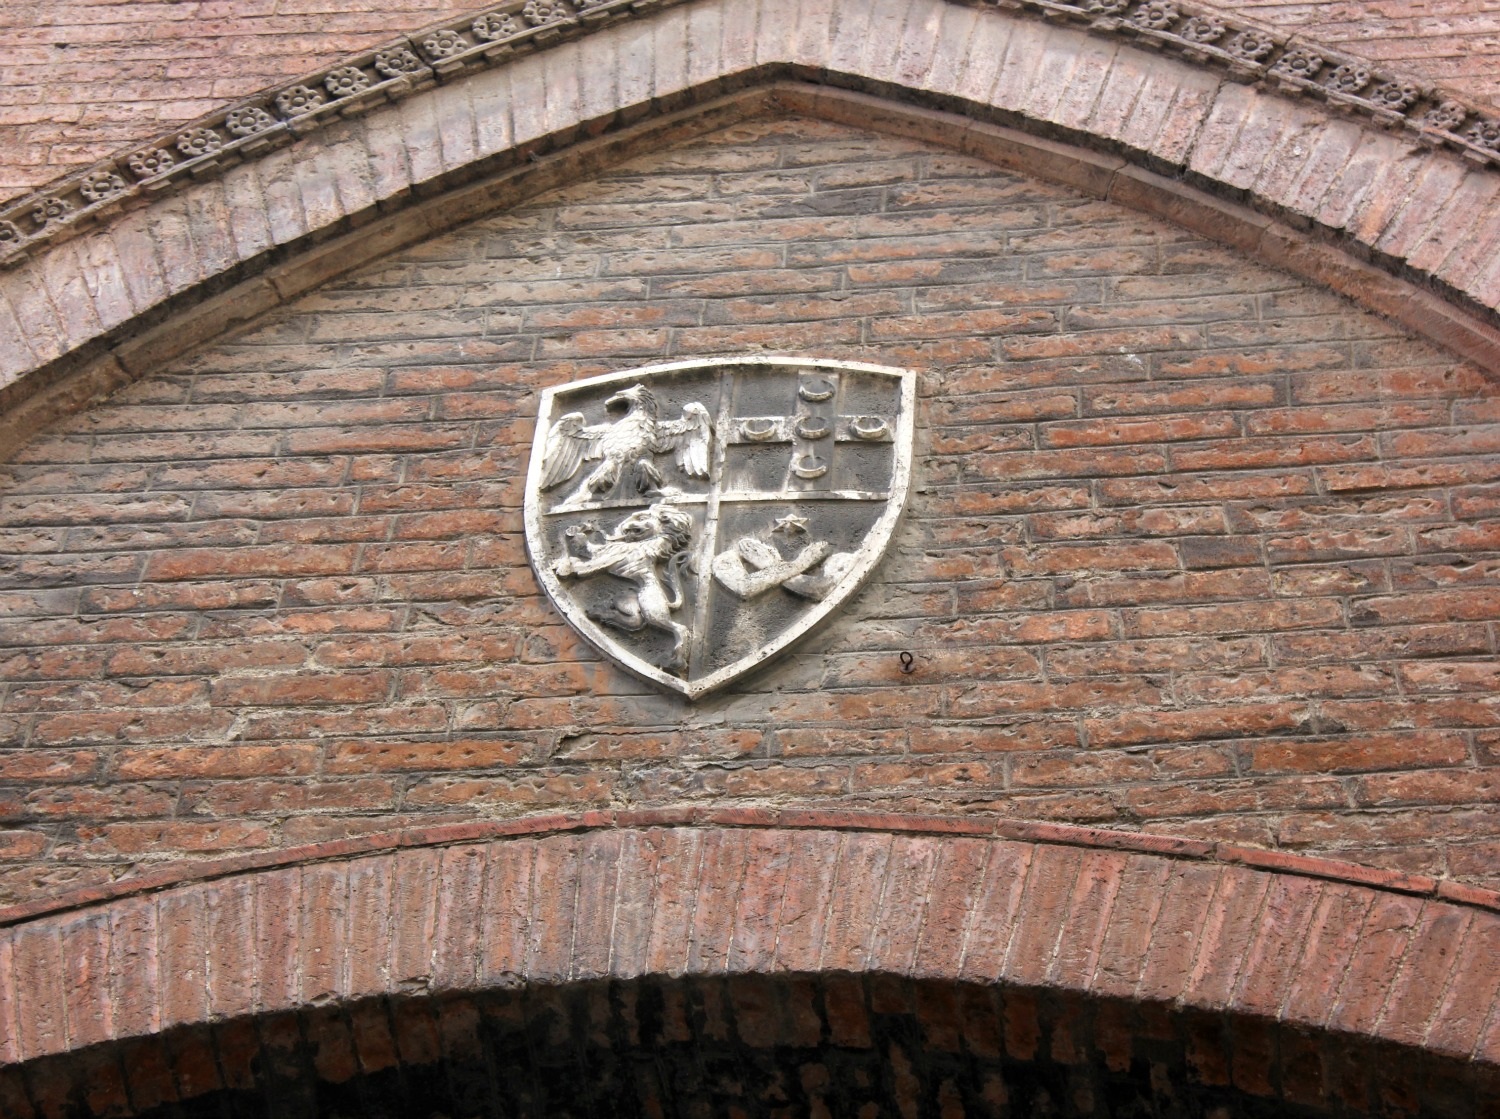 One of the shields and emblems showing the animals and symbols representing Siena's 17 areas or contrada - exploring Siena with kids, our tour discovering art, history and animals